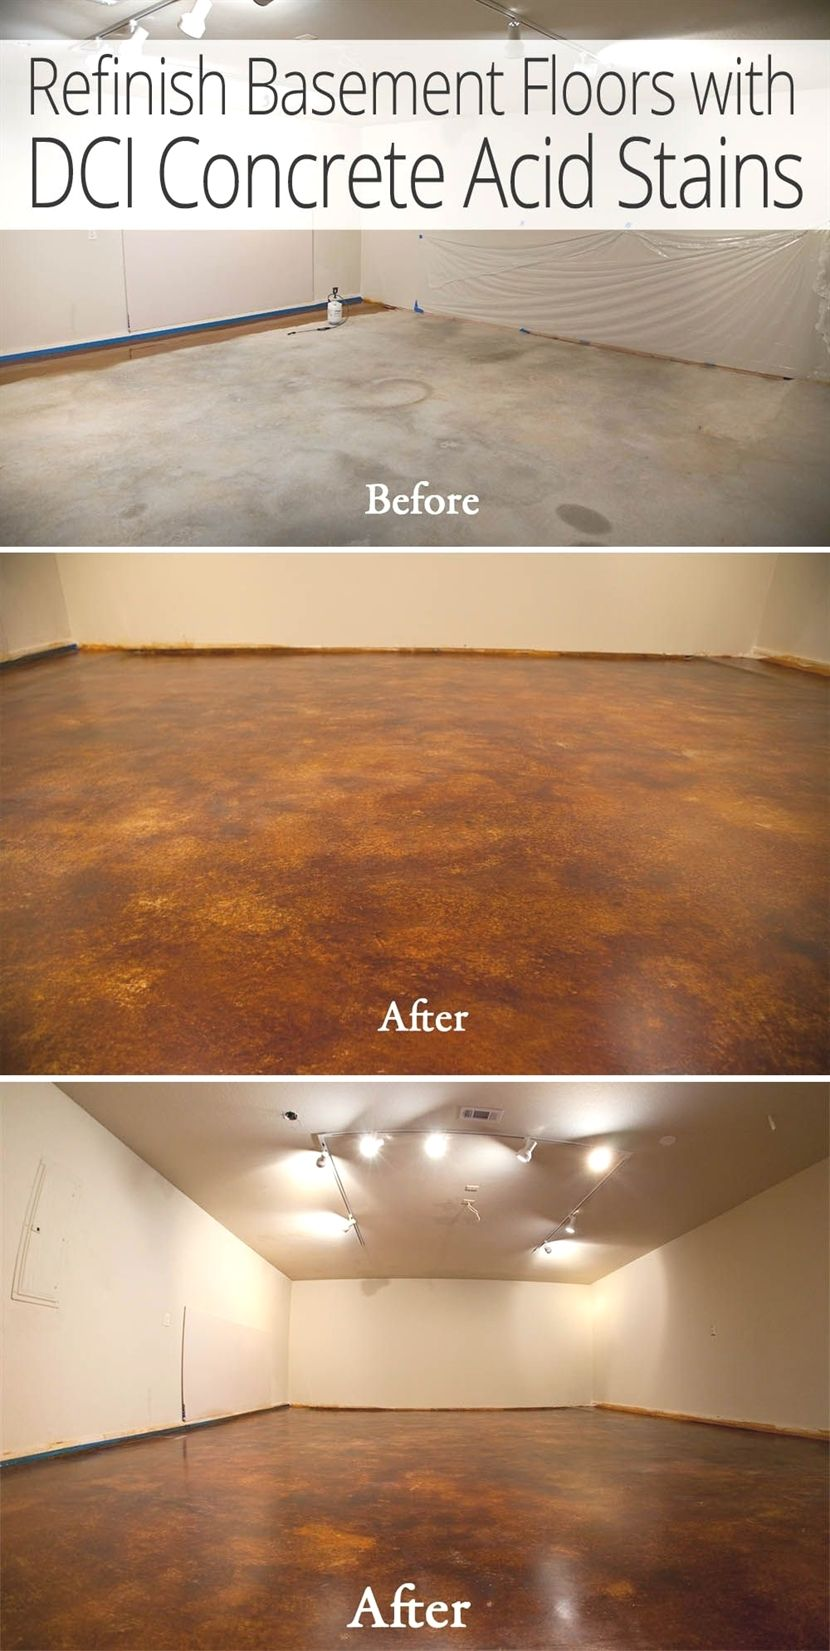 Remodel Bat Floors For Less With Dci Acid Stain And Concrete Sealer Hle Free Option To Carpet Batideasfinished